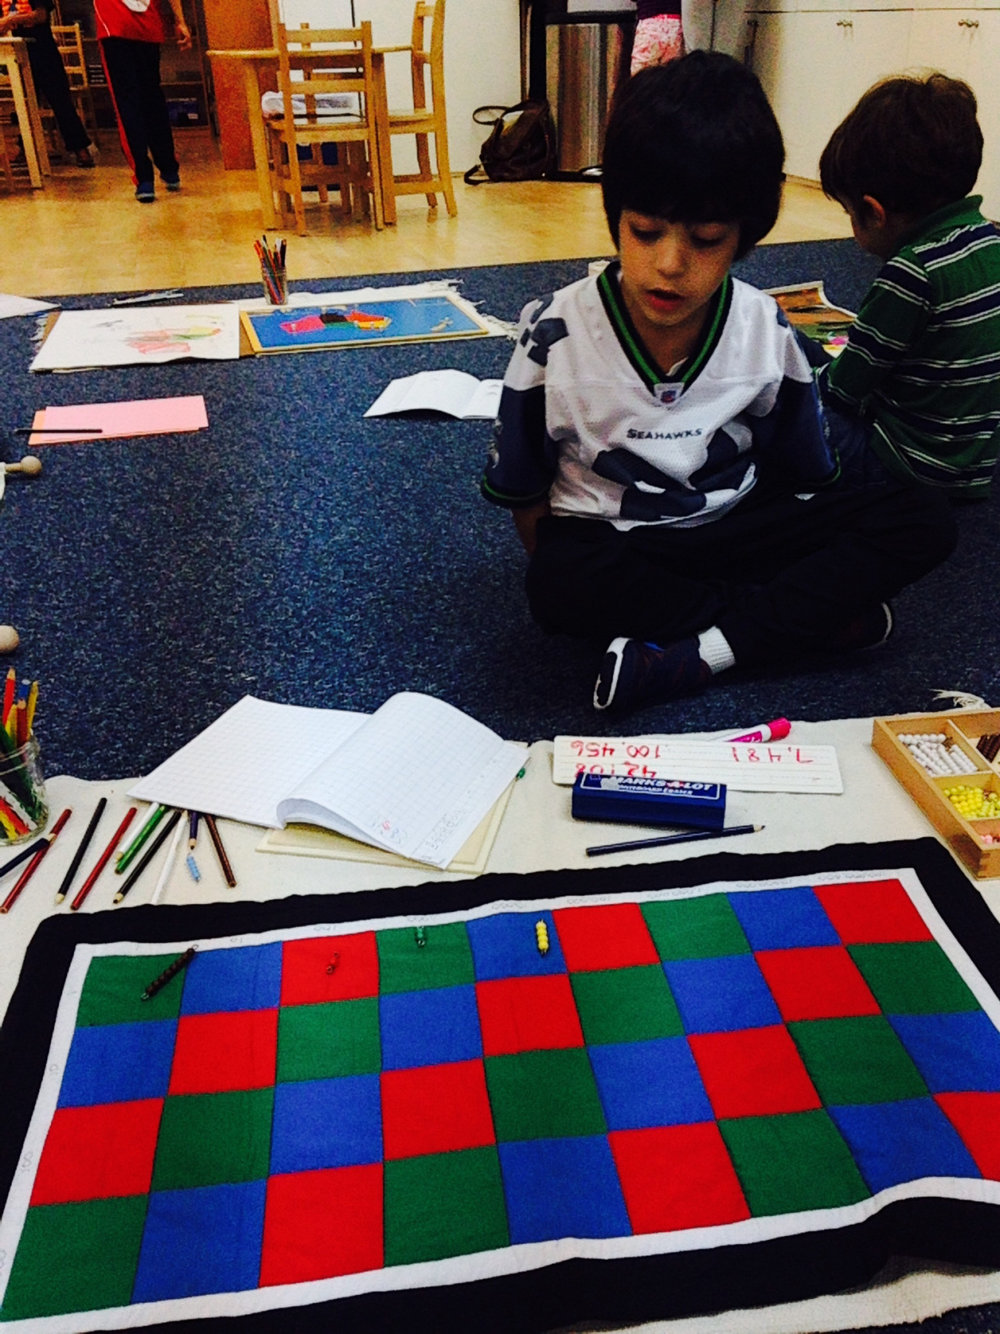 Second grade Lower Elementary West students received an introductory lesson in the use of the Checkerboard material. This lesson helps to strengthen a student's understanding of place value as well as reading and writing numbers. Later on, the same Checkerboard material is used for large scale multiplication problems.